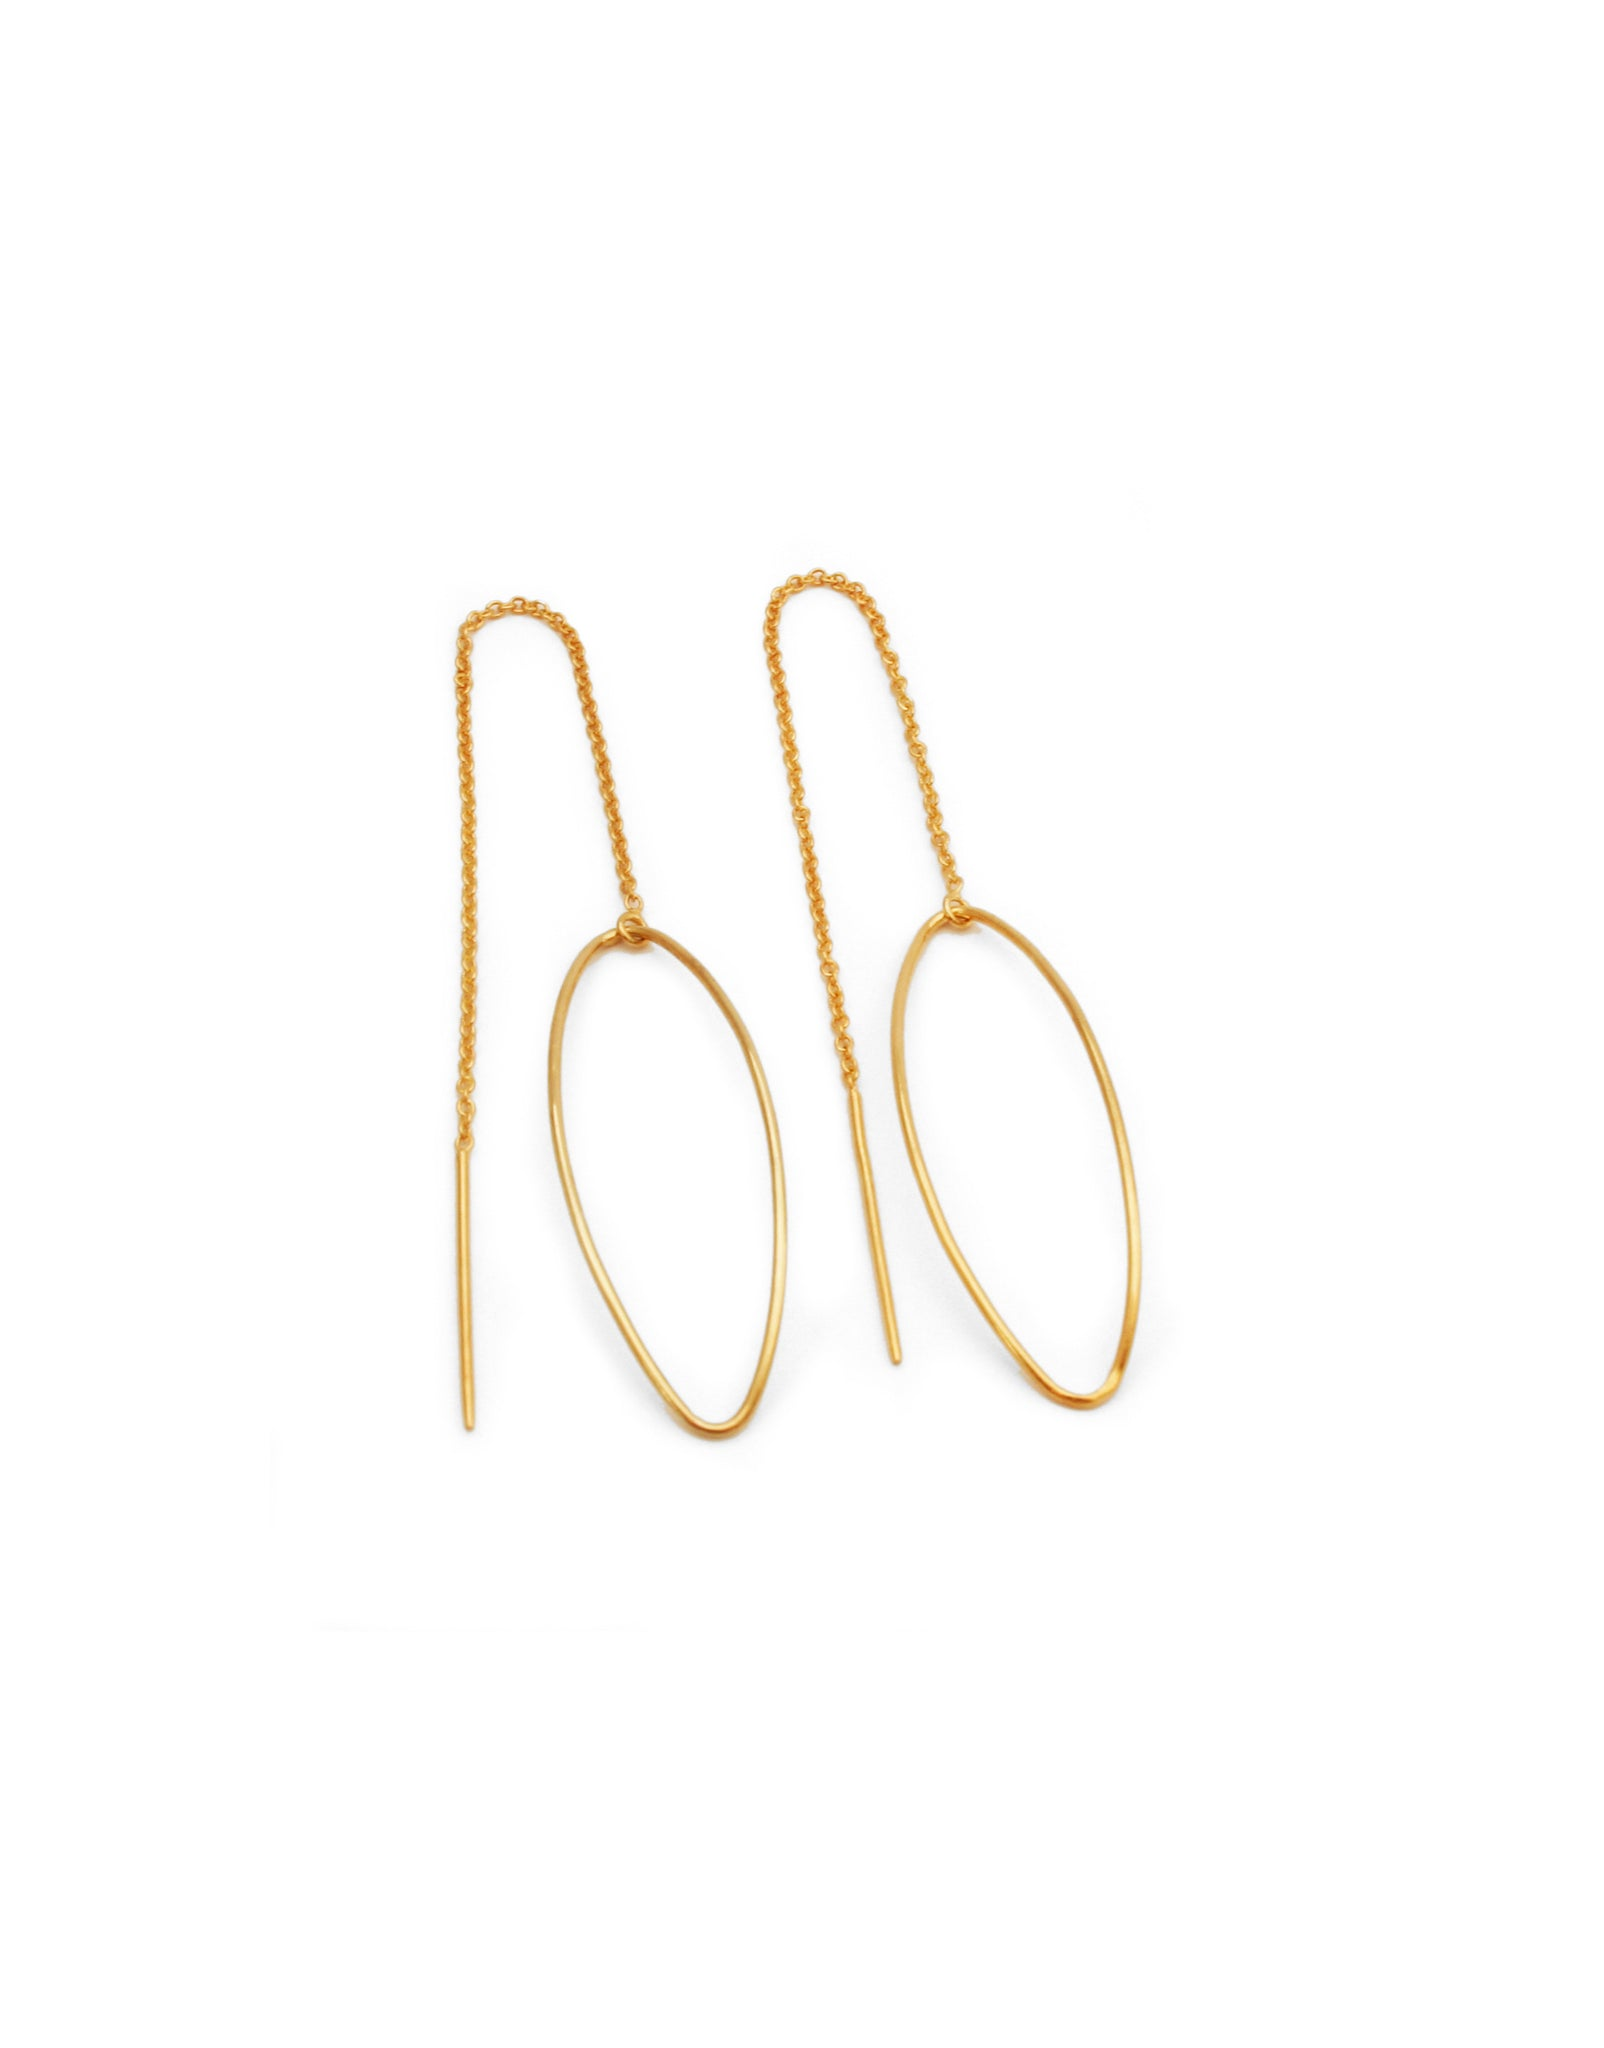 AMANDE CHAIN EARRINGS